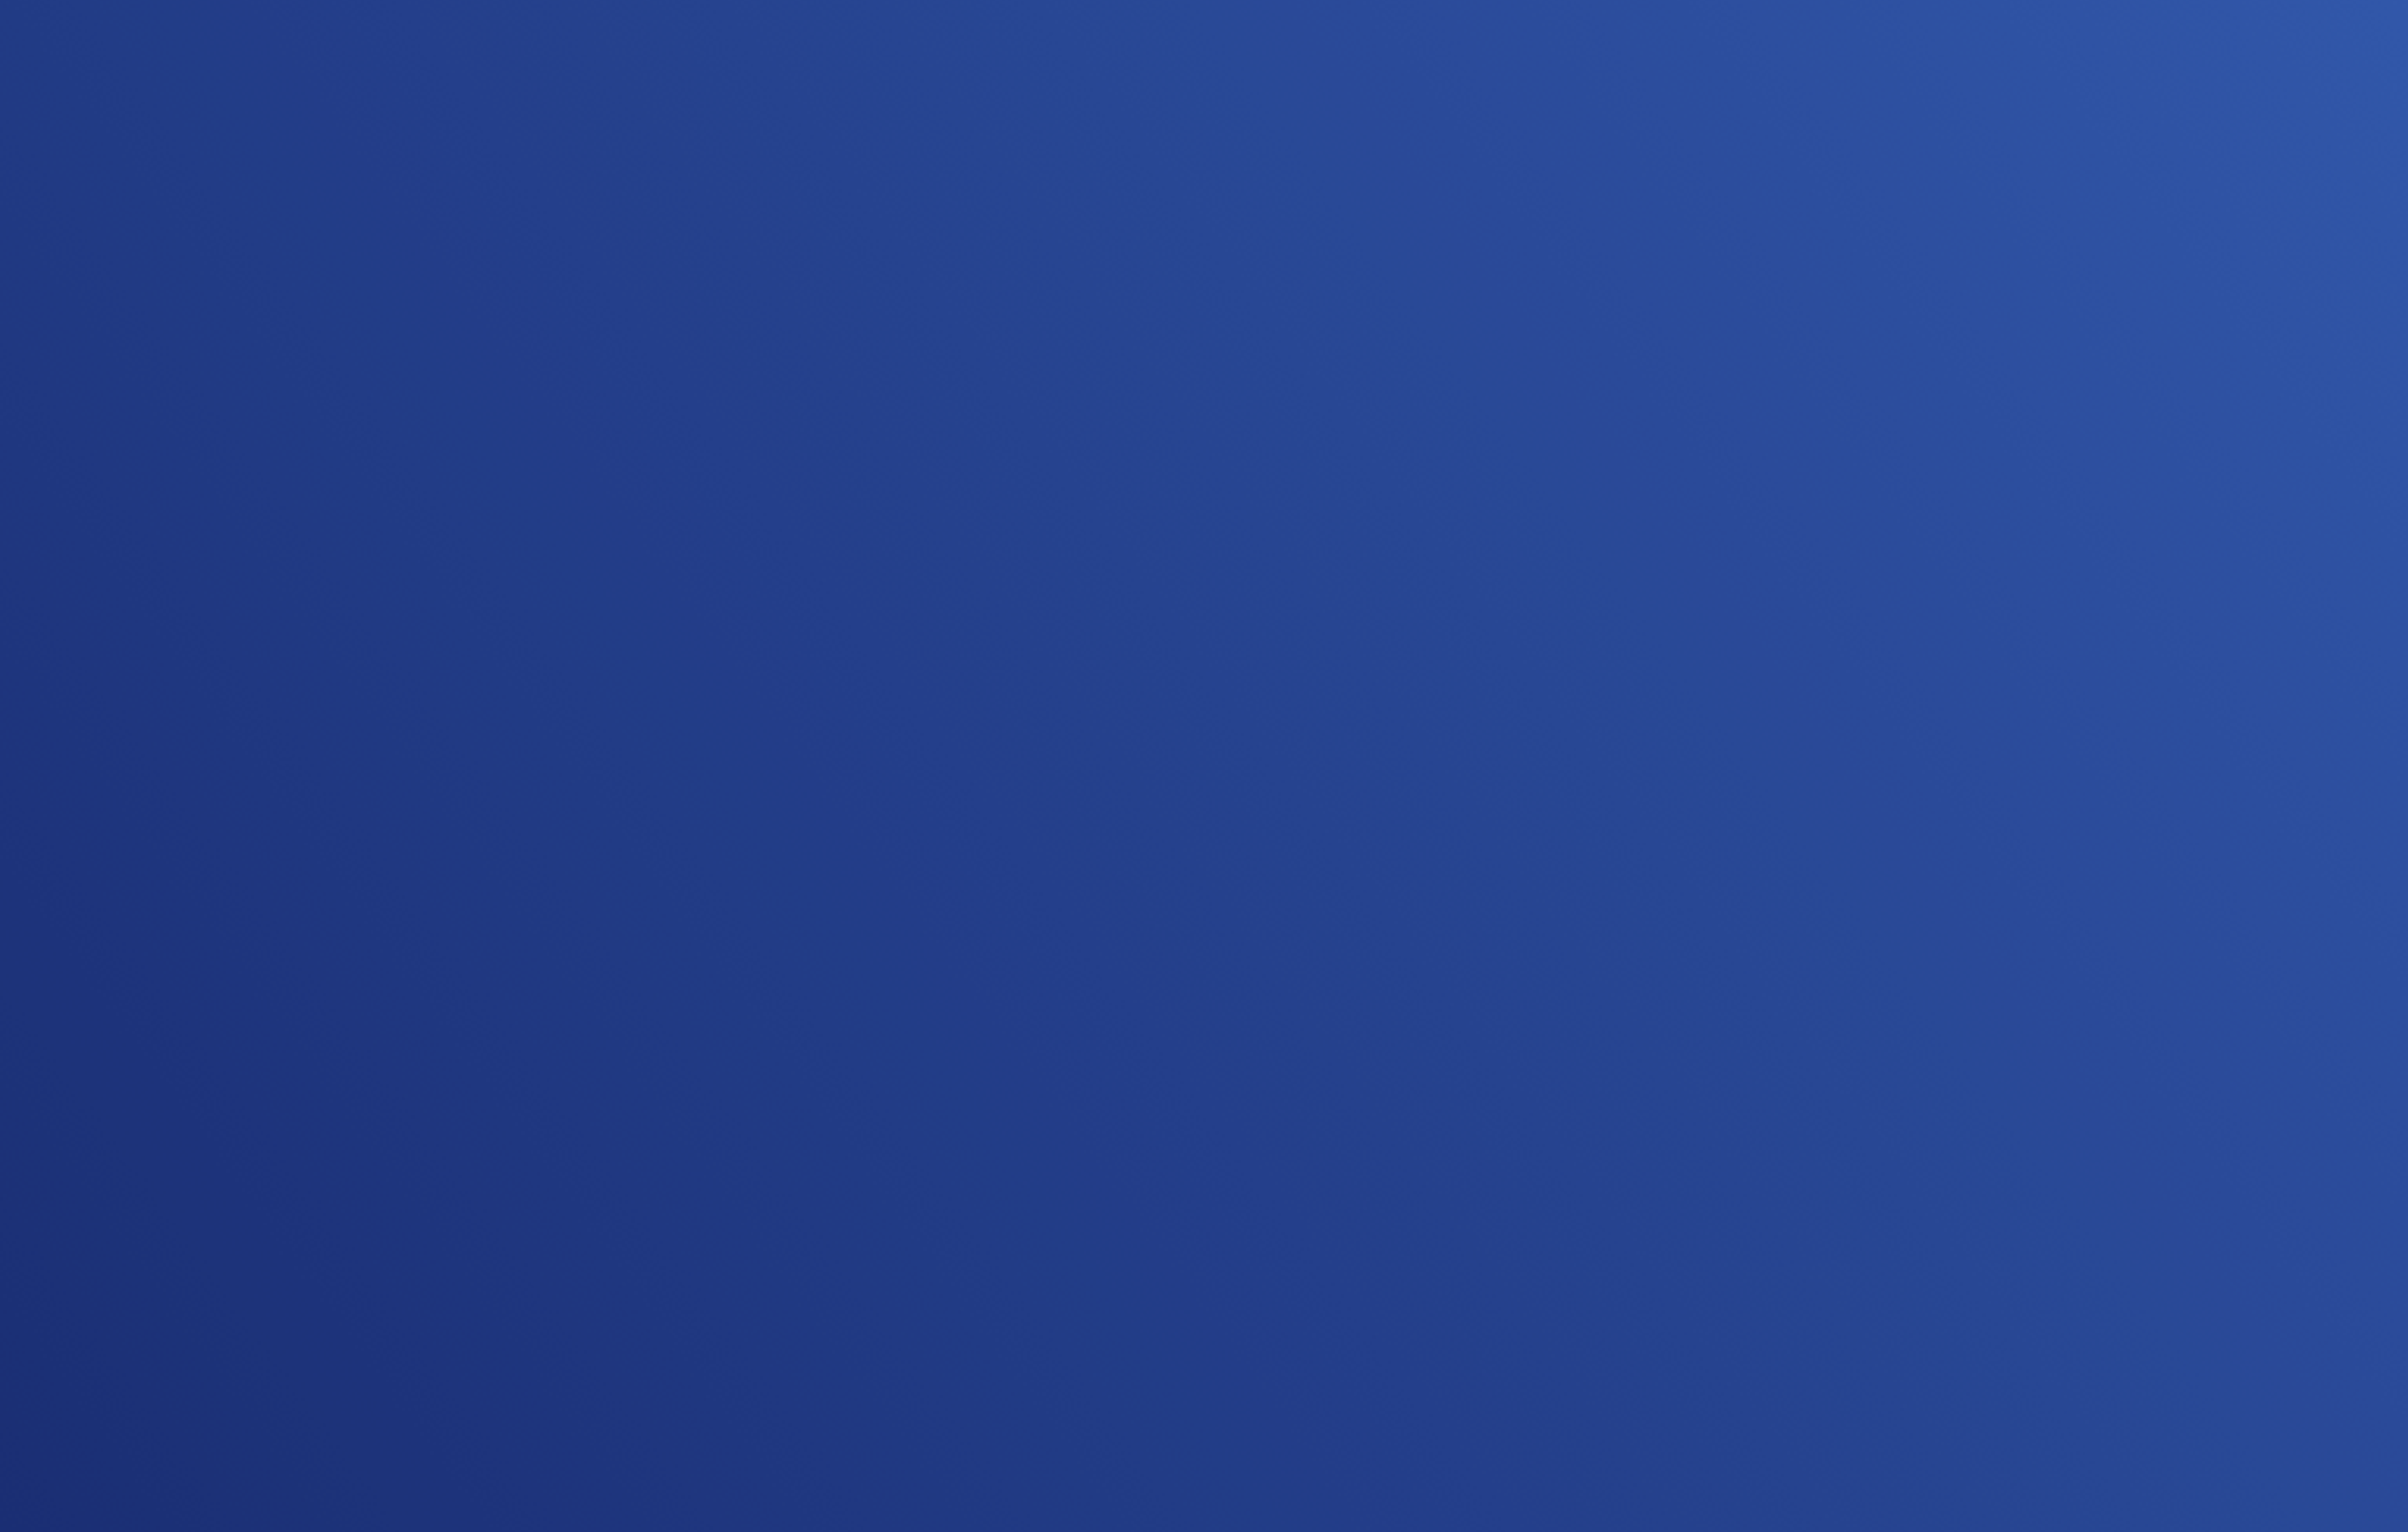 PlayStation Blue Background Texture